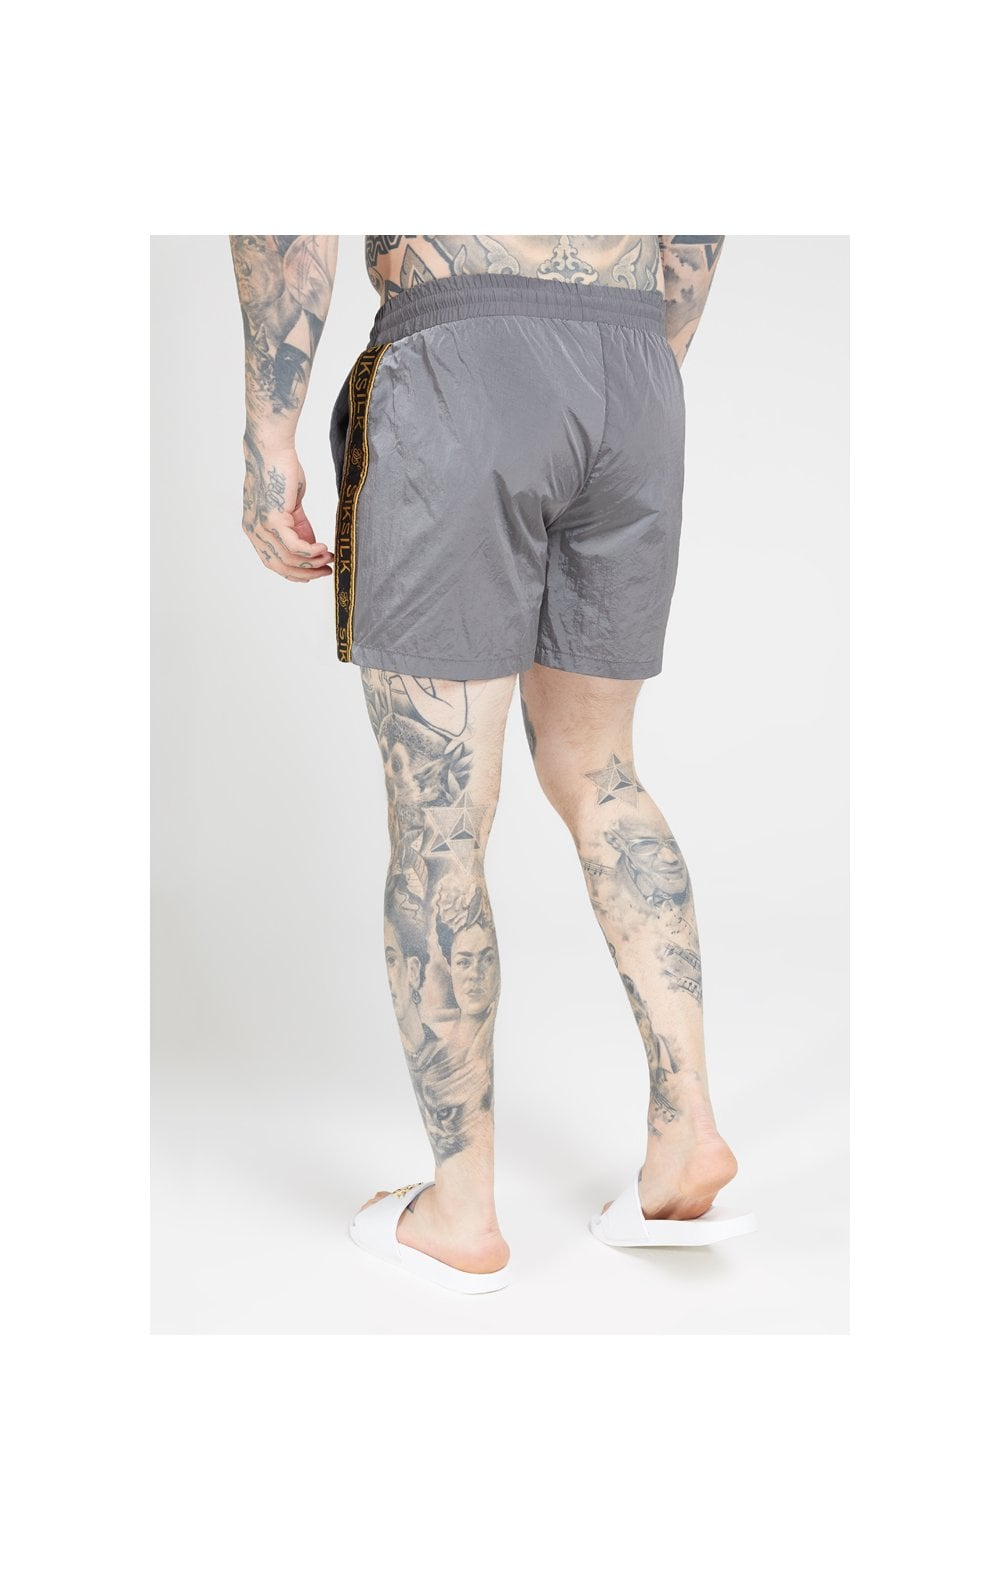 SikSilk Crushed Nylon Tape Shorts – Grey & Gold (4)